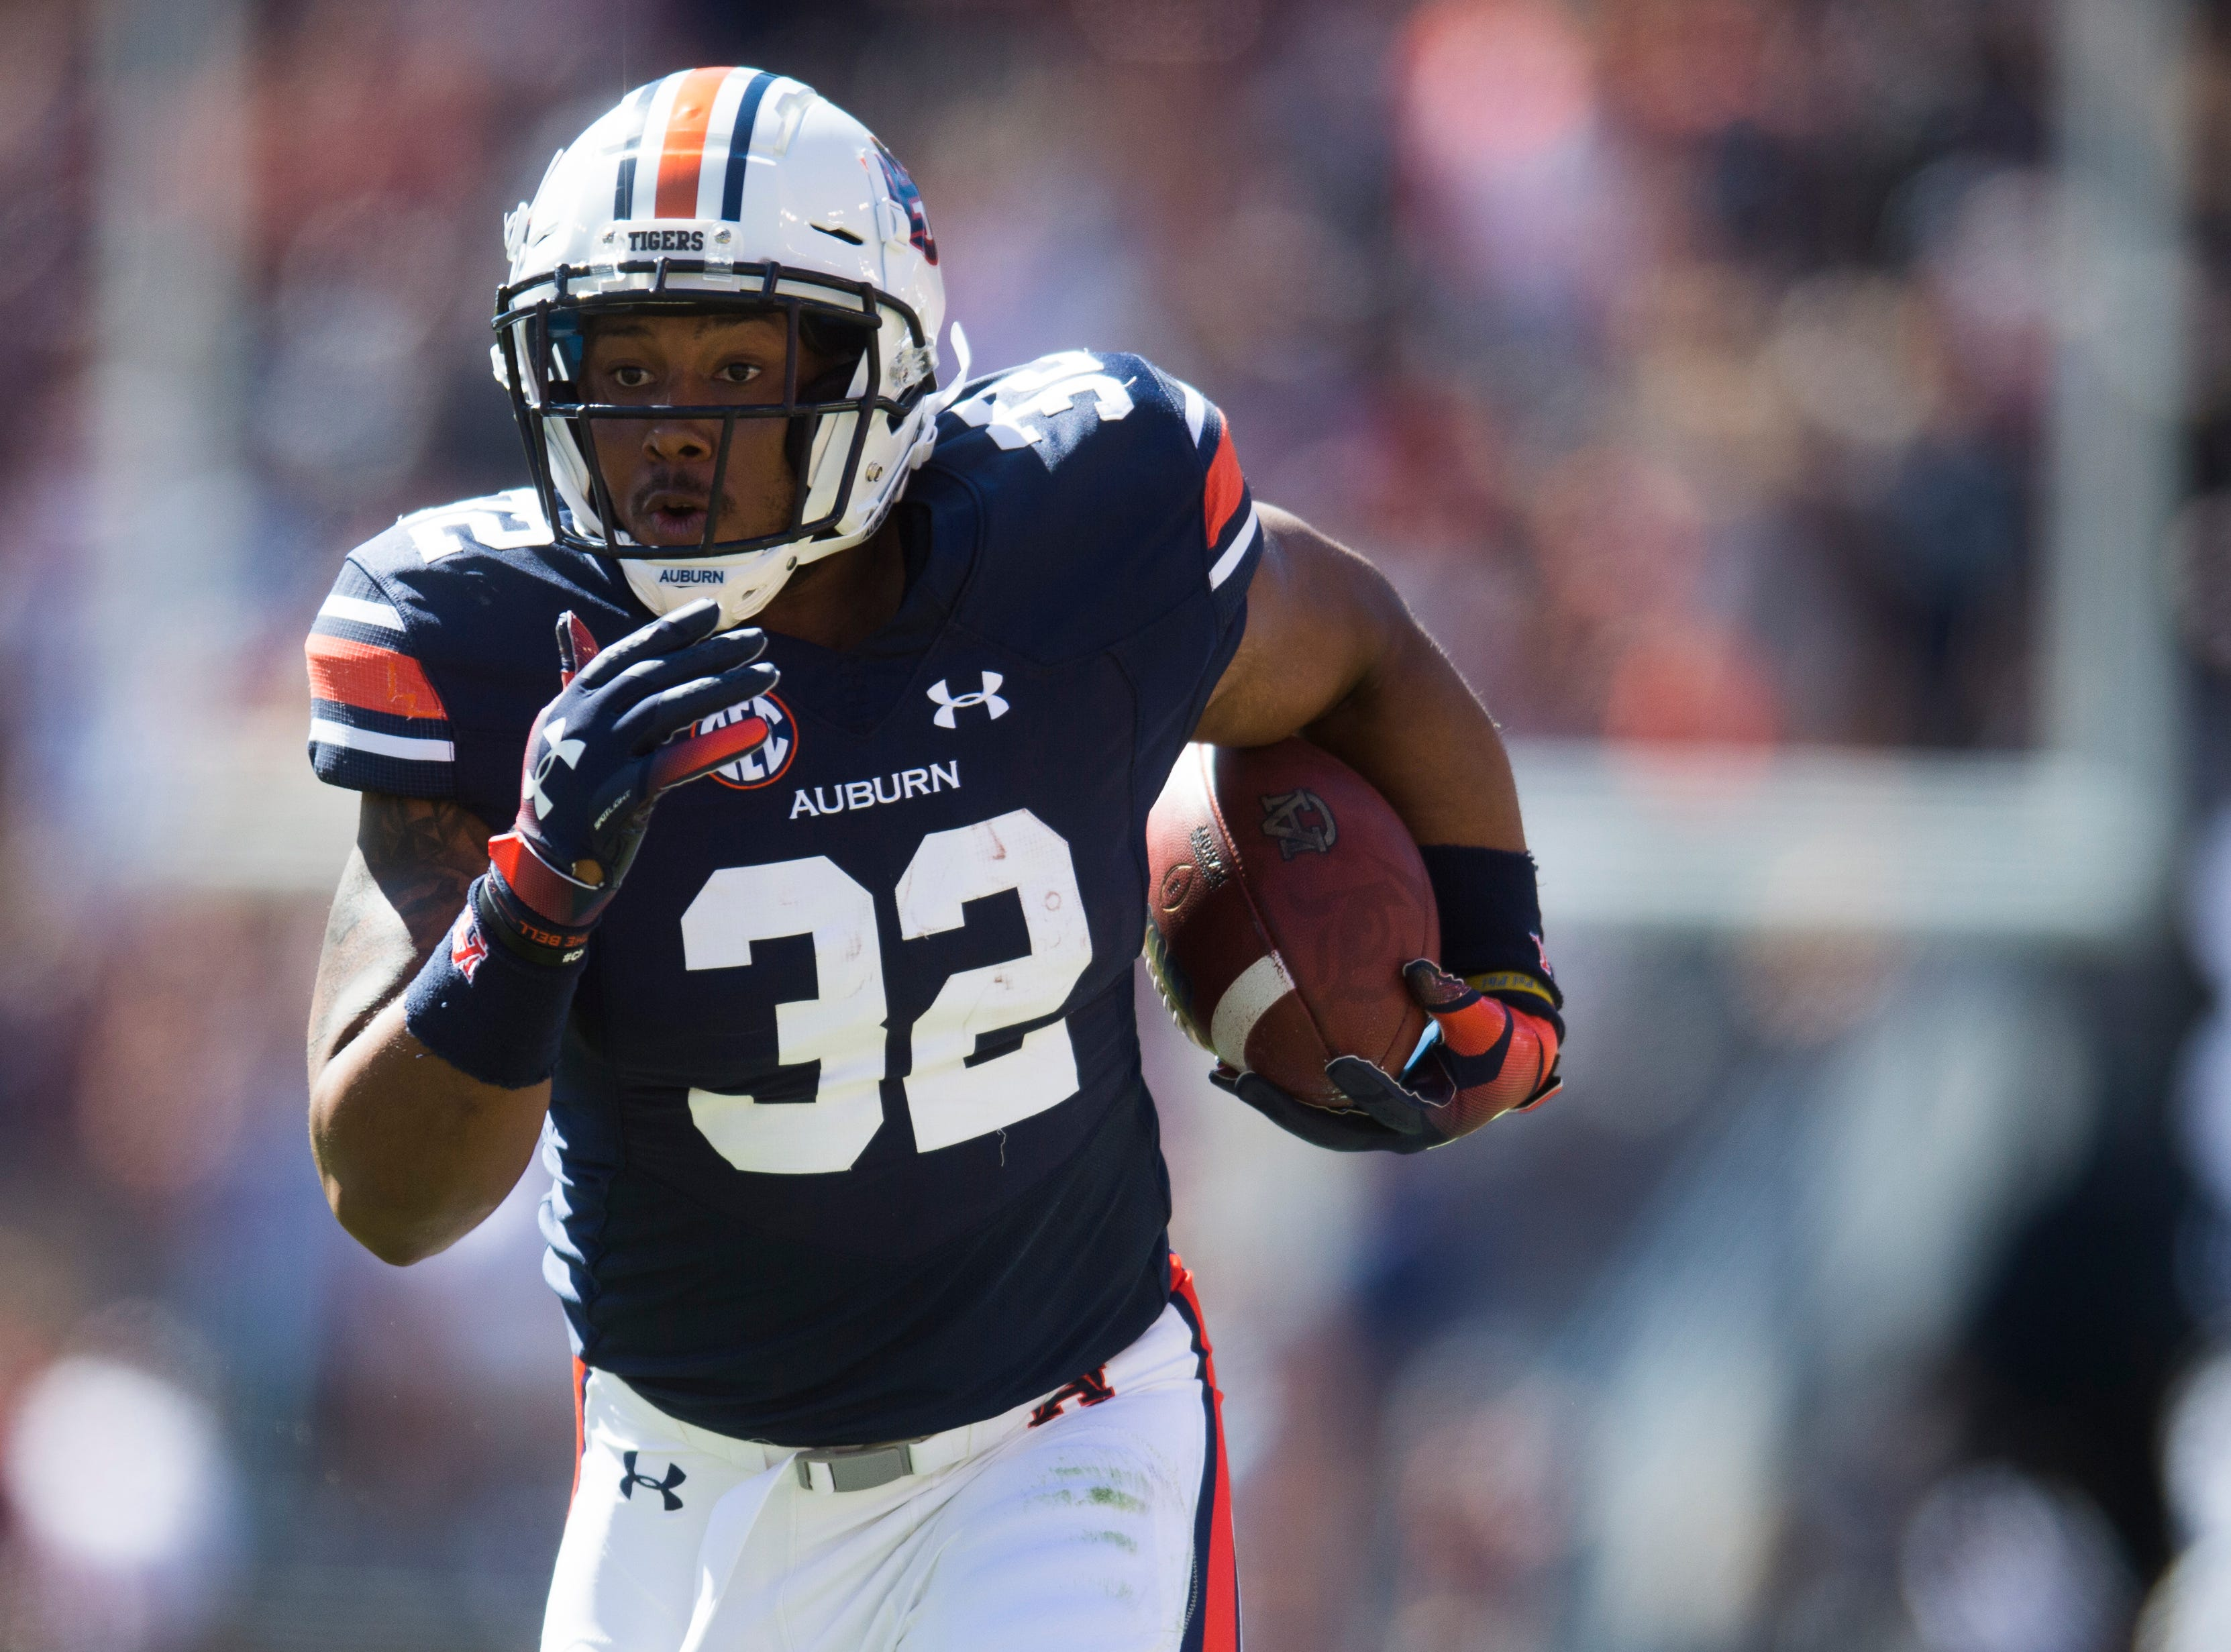 Auburn running back Malik Miller (32) runs with the ball during a game between Tennessee and Auburn at Jordan-Hare Stadium in Auburn, Alabama on Saturday, October 13, 2018.